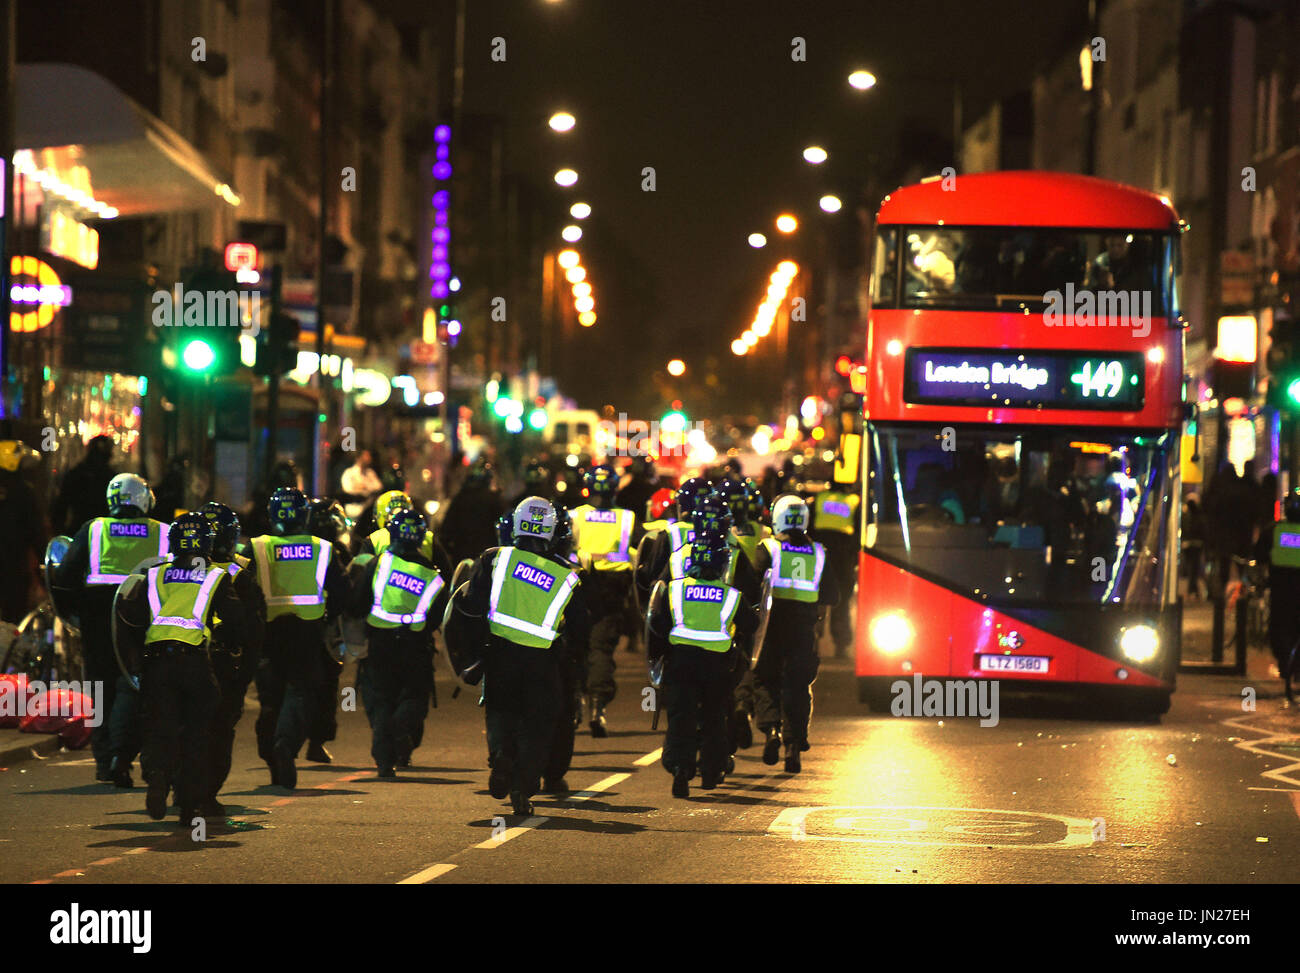 Riot police at a protest in Kingsland Road in east London, where people gathered in response to the death of Rashan Charles. - Stock Image